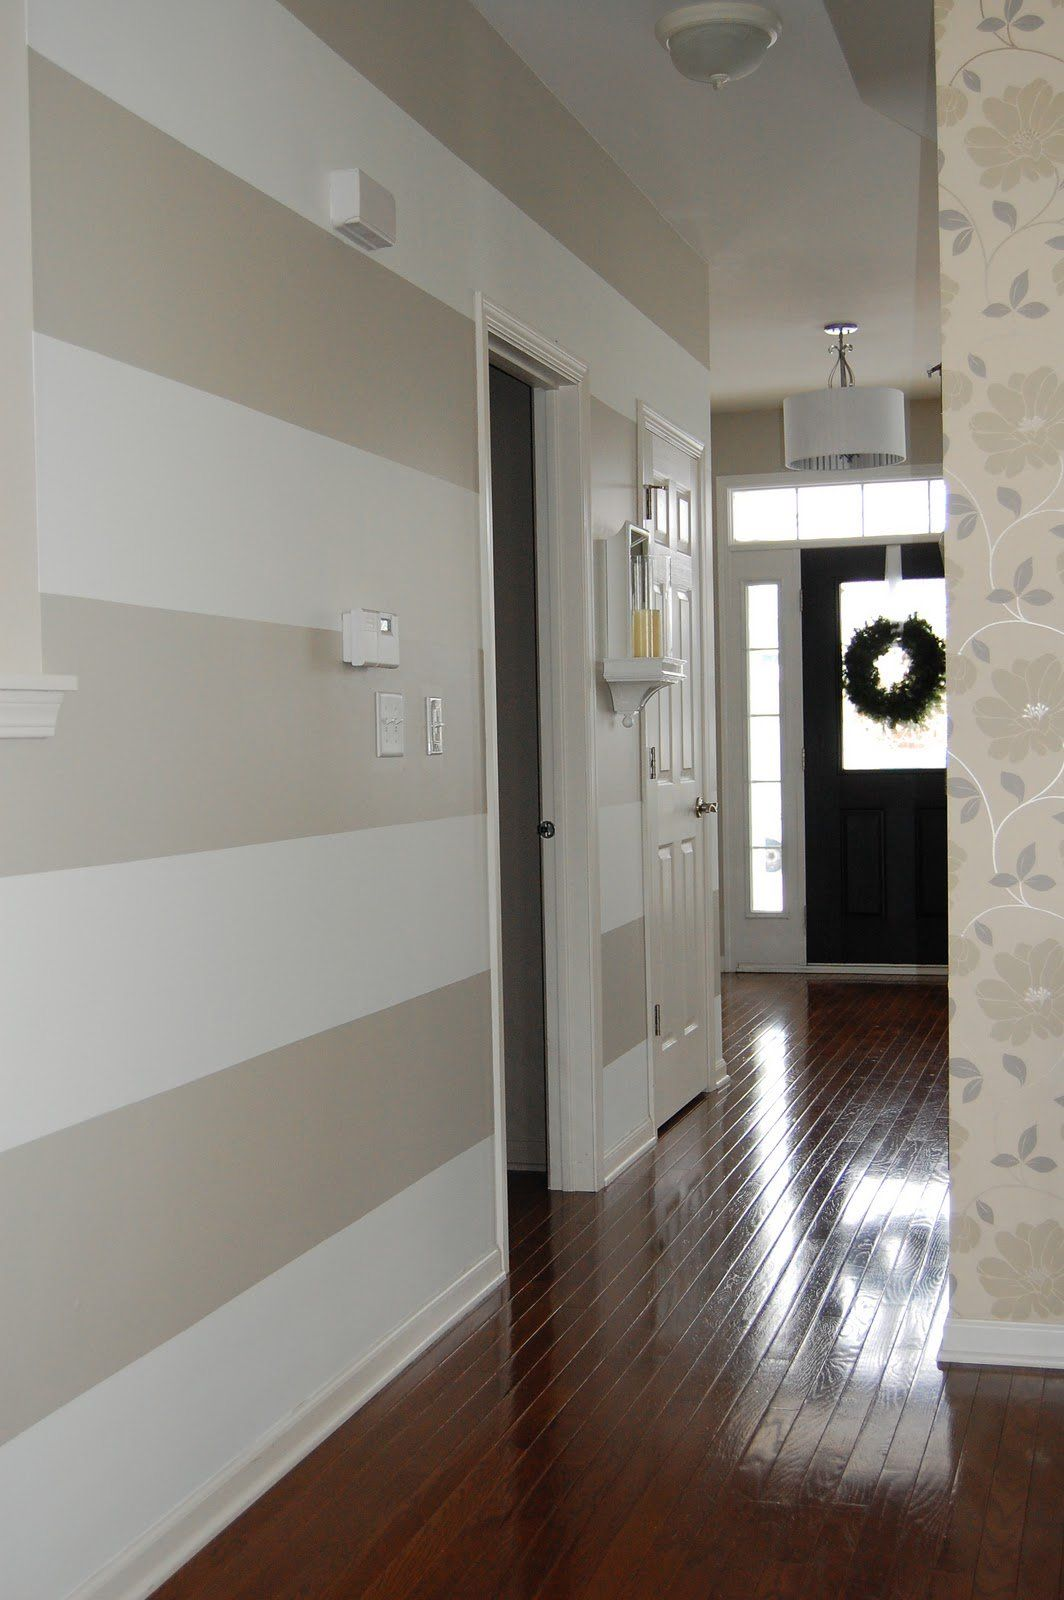 Hallway wallpaper or paint  horizontal striped hallway with coordinating wallpaper  Updating